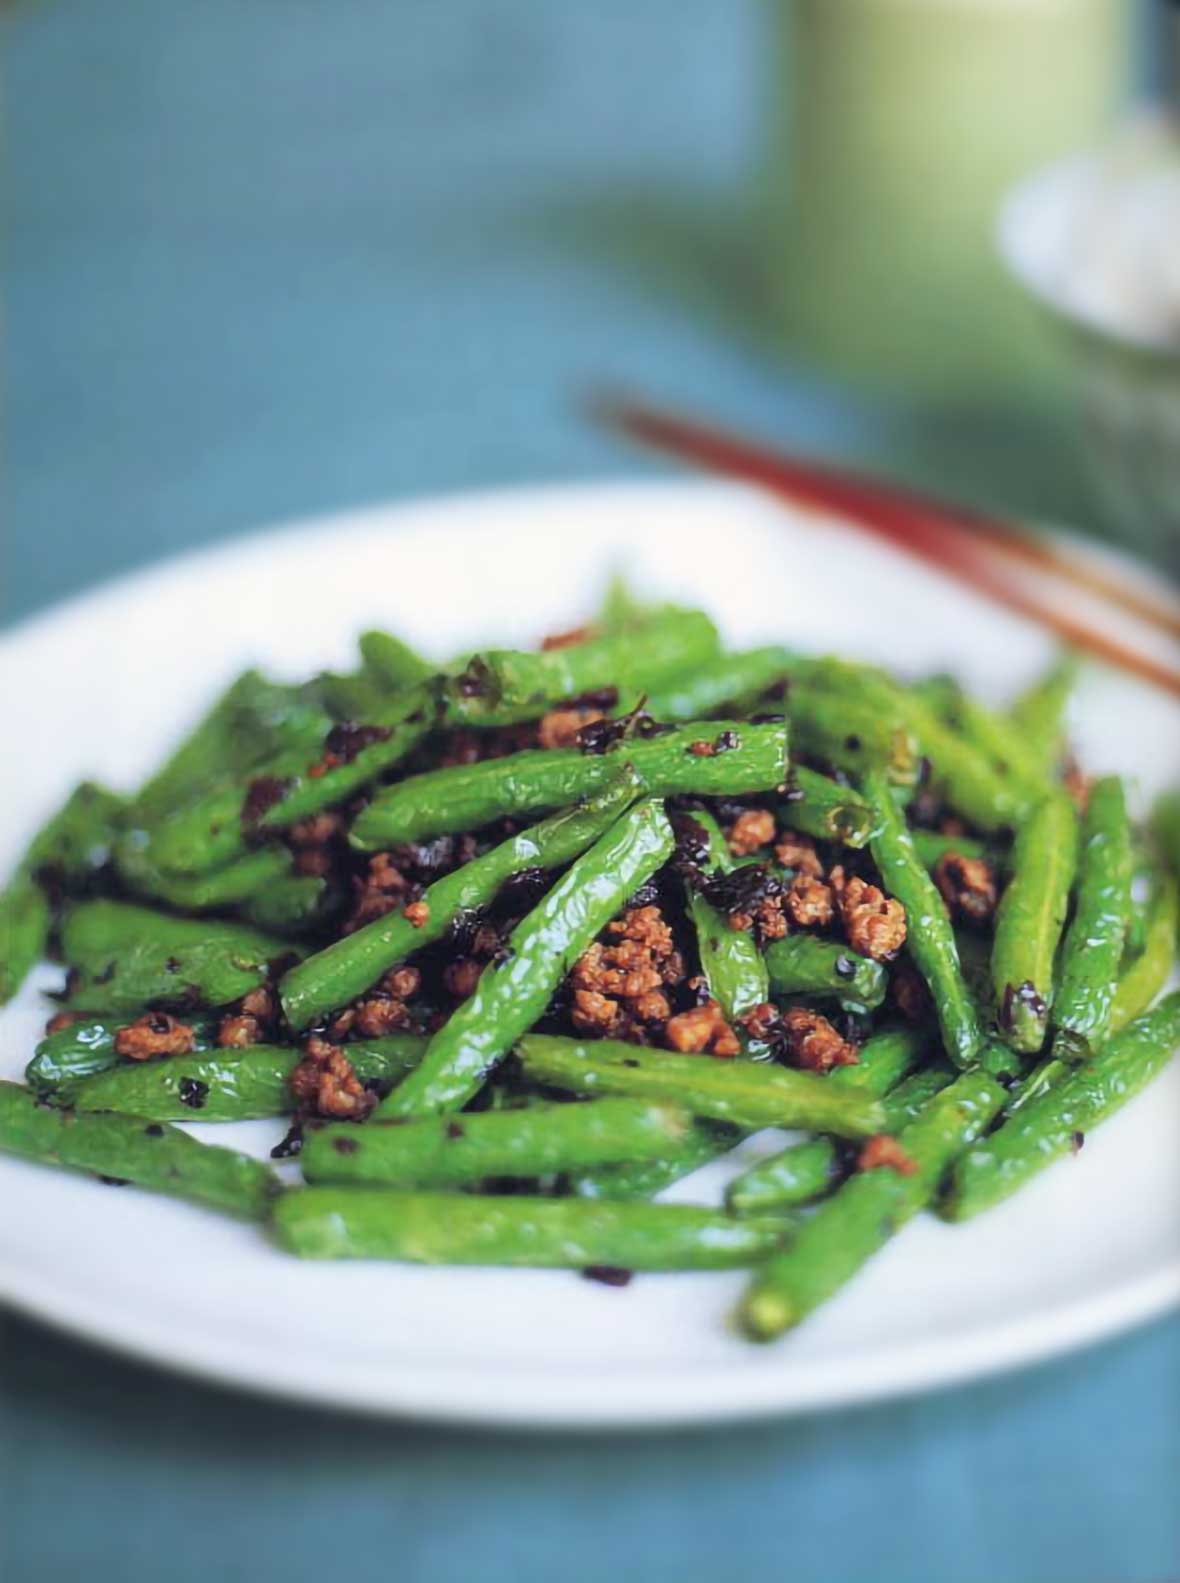 Plate of dry-fried green beans with cooked ground pork, chopsticks, on a blue background